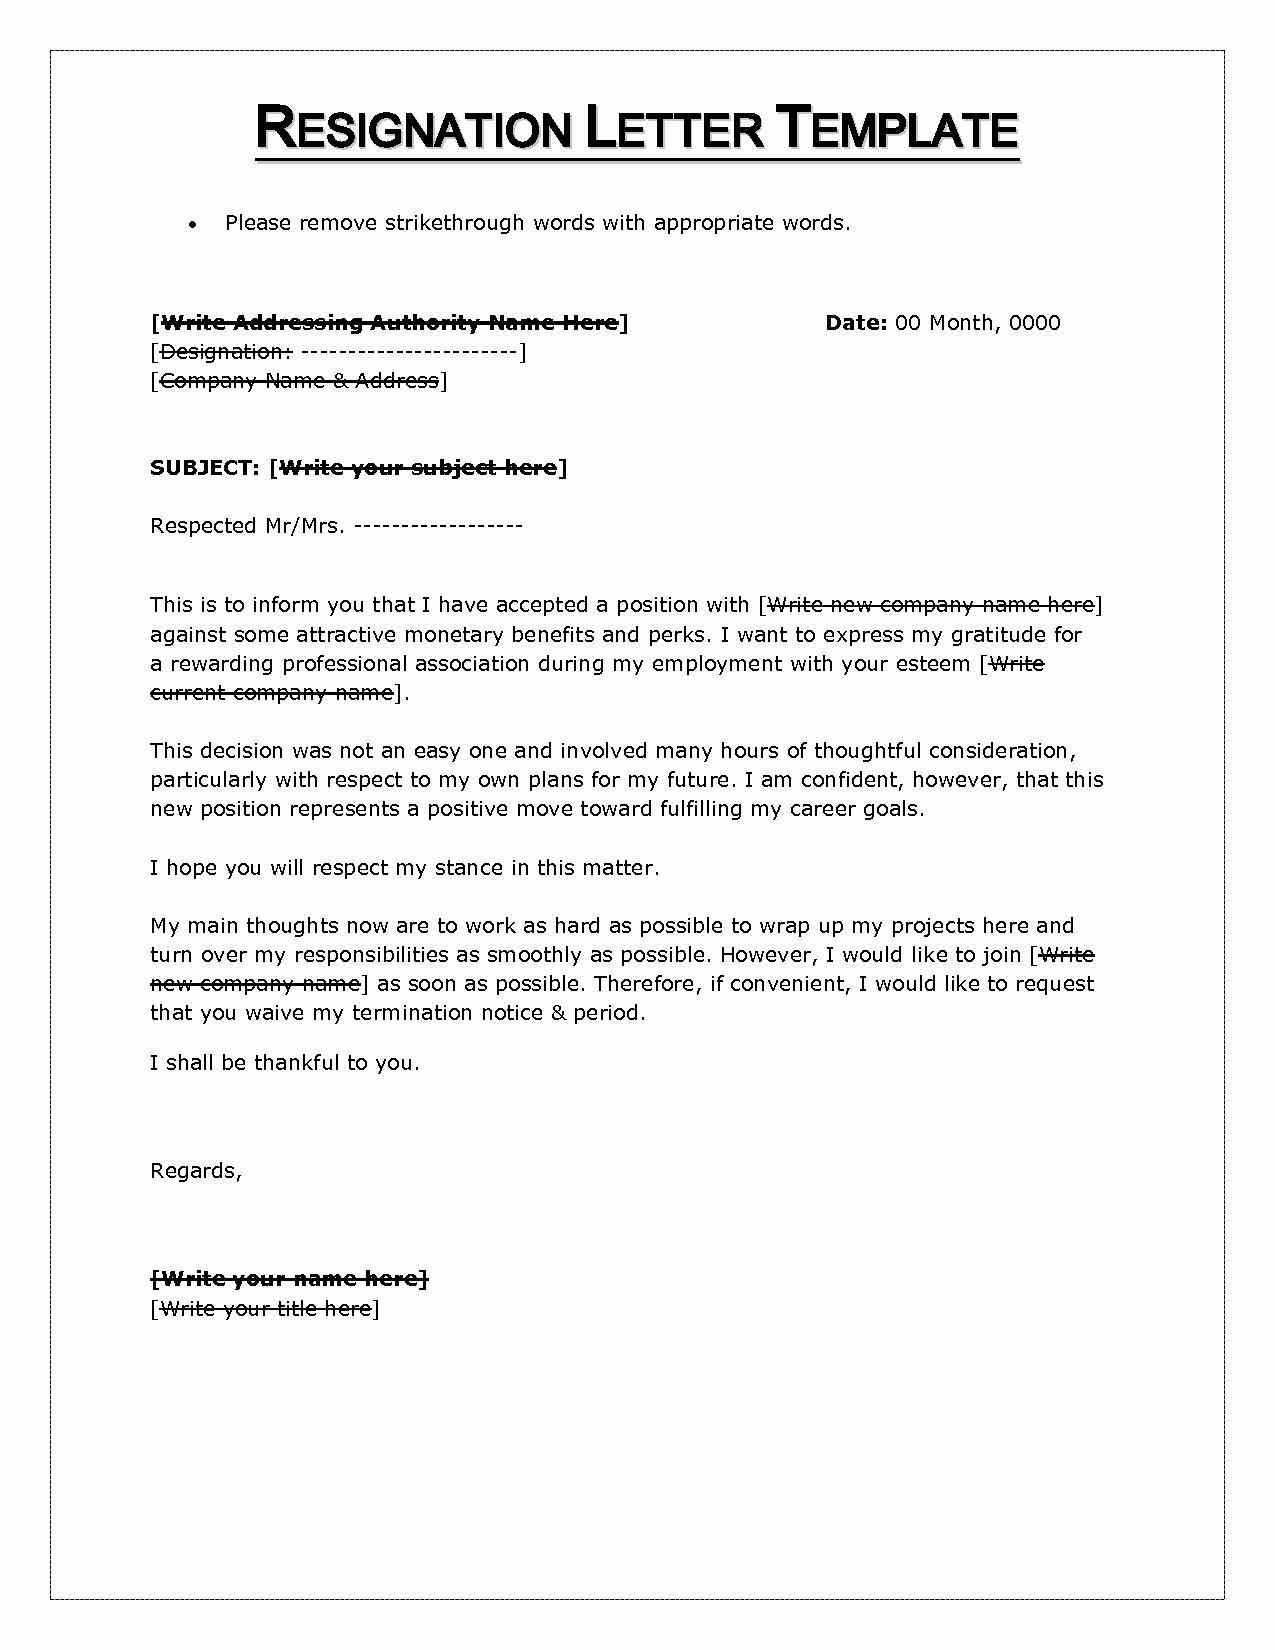 Resignation Letter Template Word Doc Lovely Resignation Letter Sample In Word format